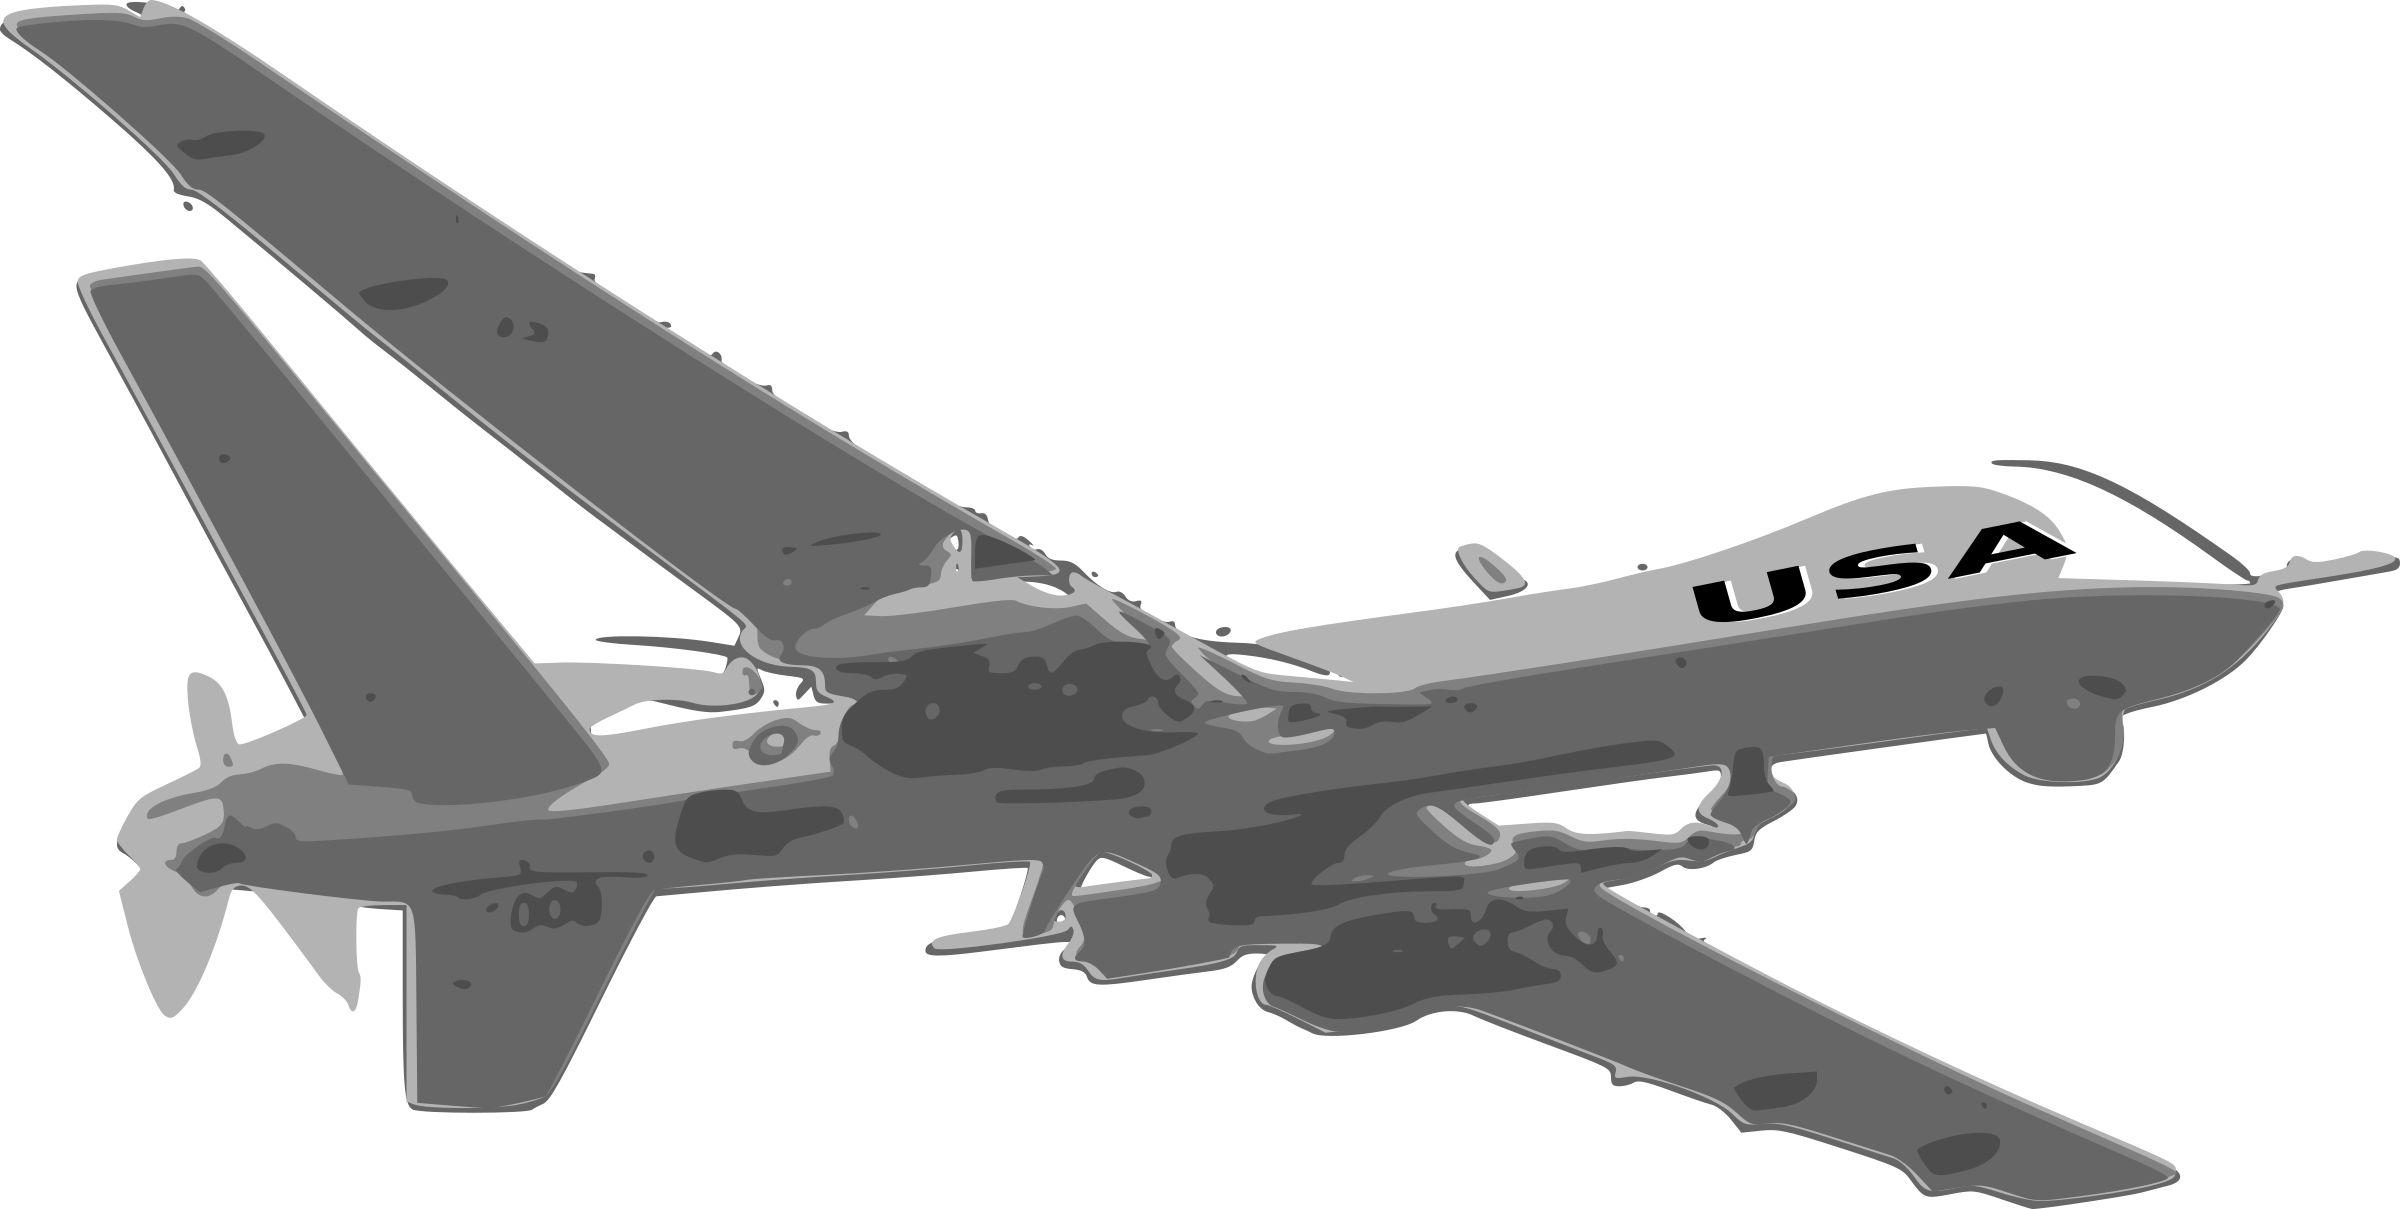 Predator Drone by Joe Linux